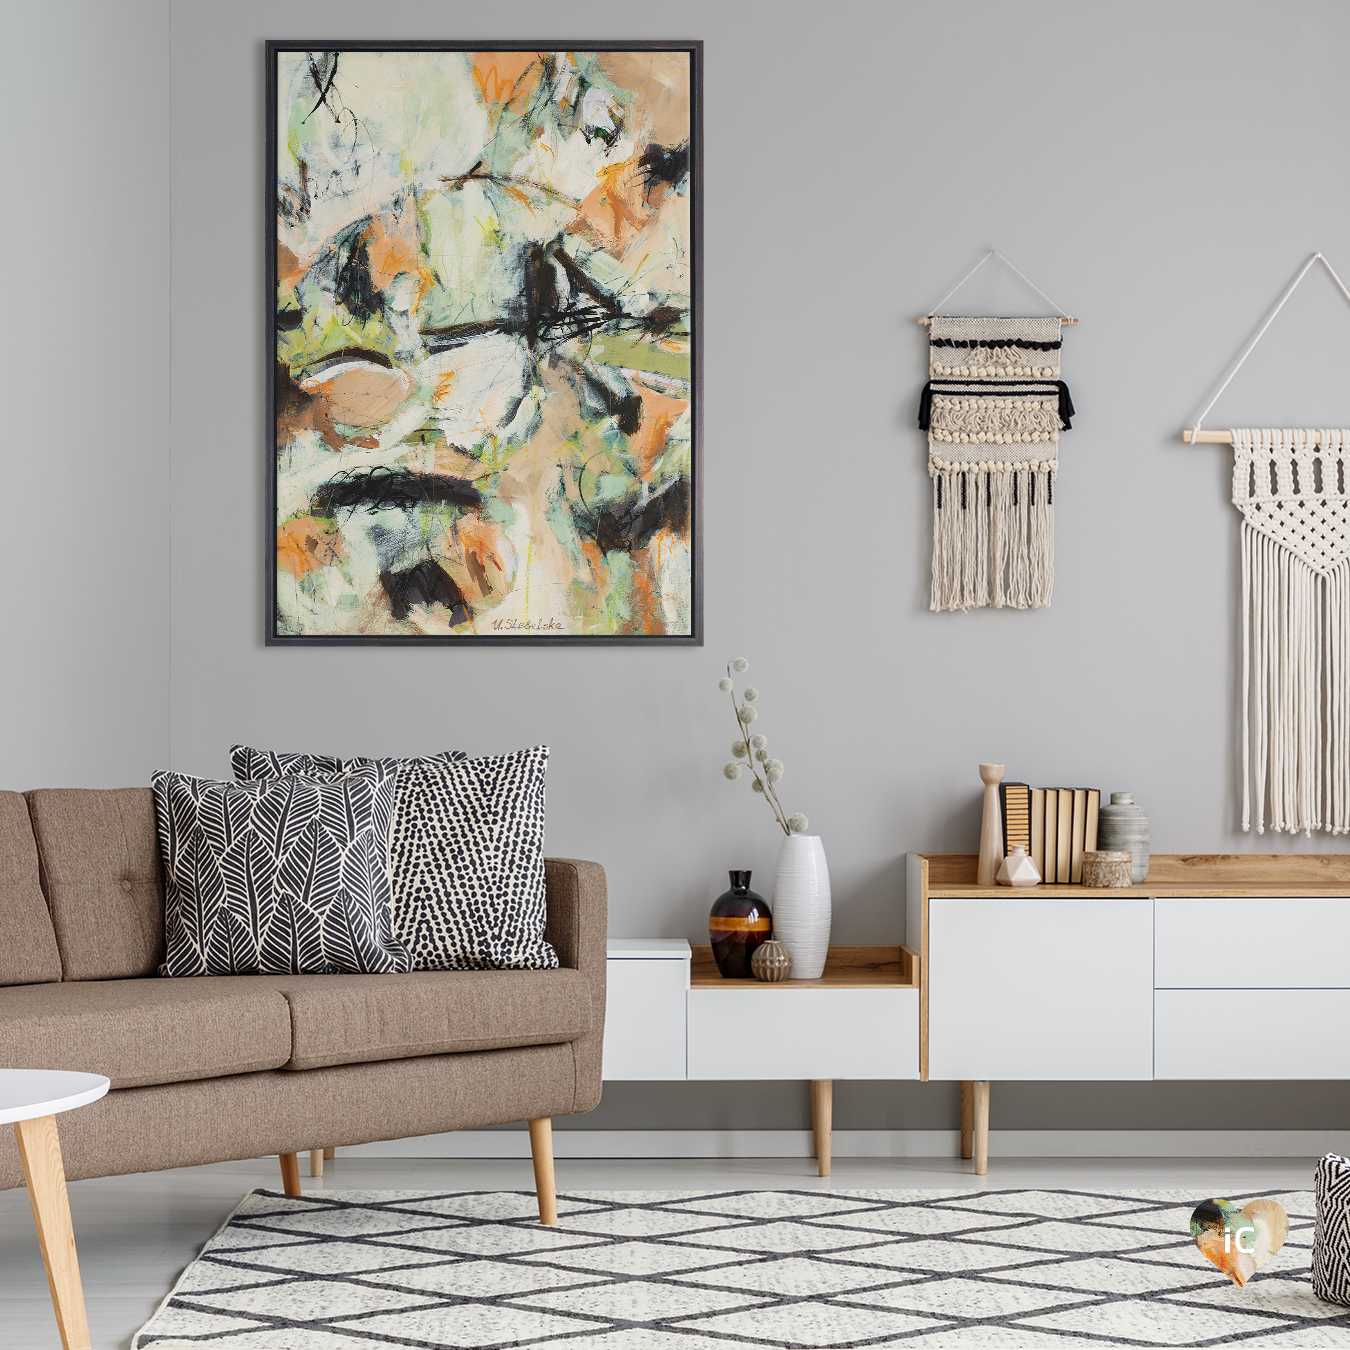 an abstraction featuring peach, tan, green, black, and white